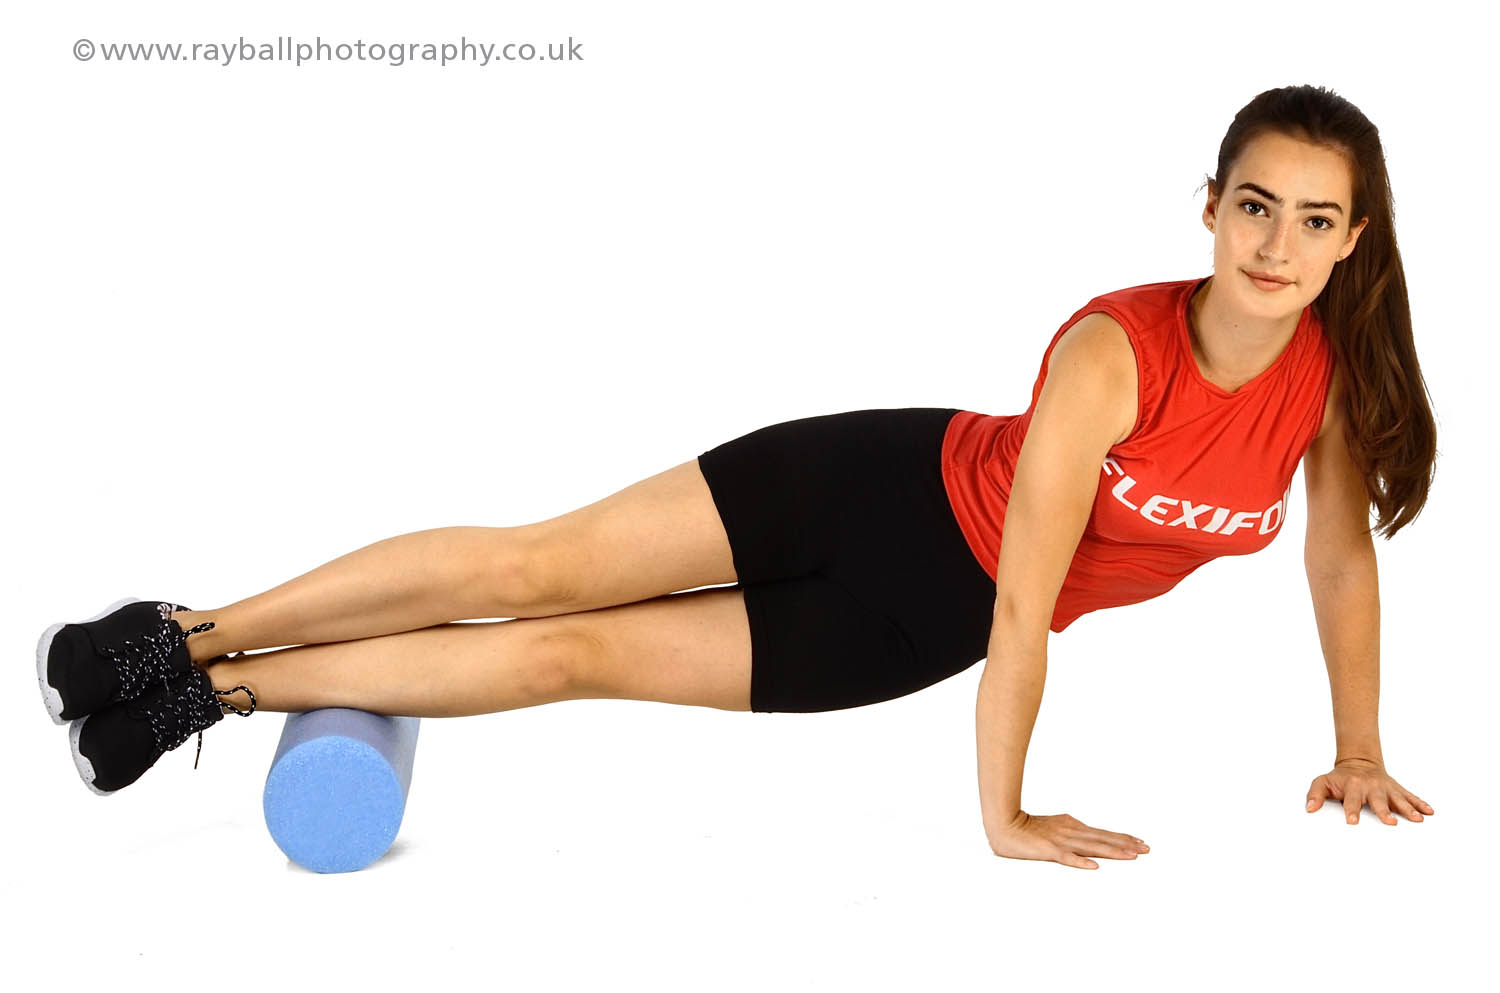 Flexifoil - power kite manufacturer for land and kitesurfing with headquarters in Chessington - Limber up with a Flexifoil foam roller - picture demonstrates toning the peroneal muscles.